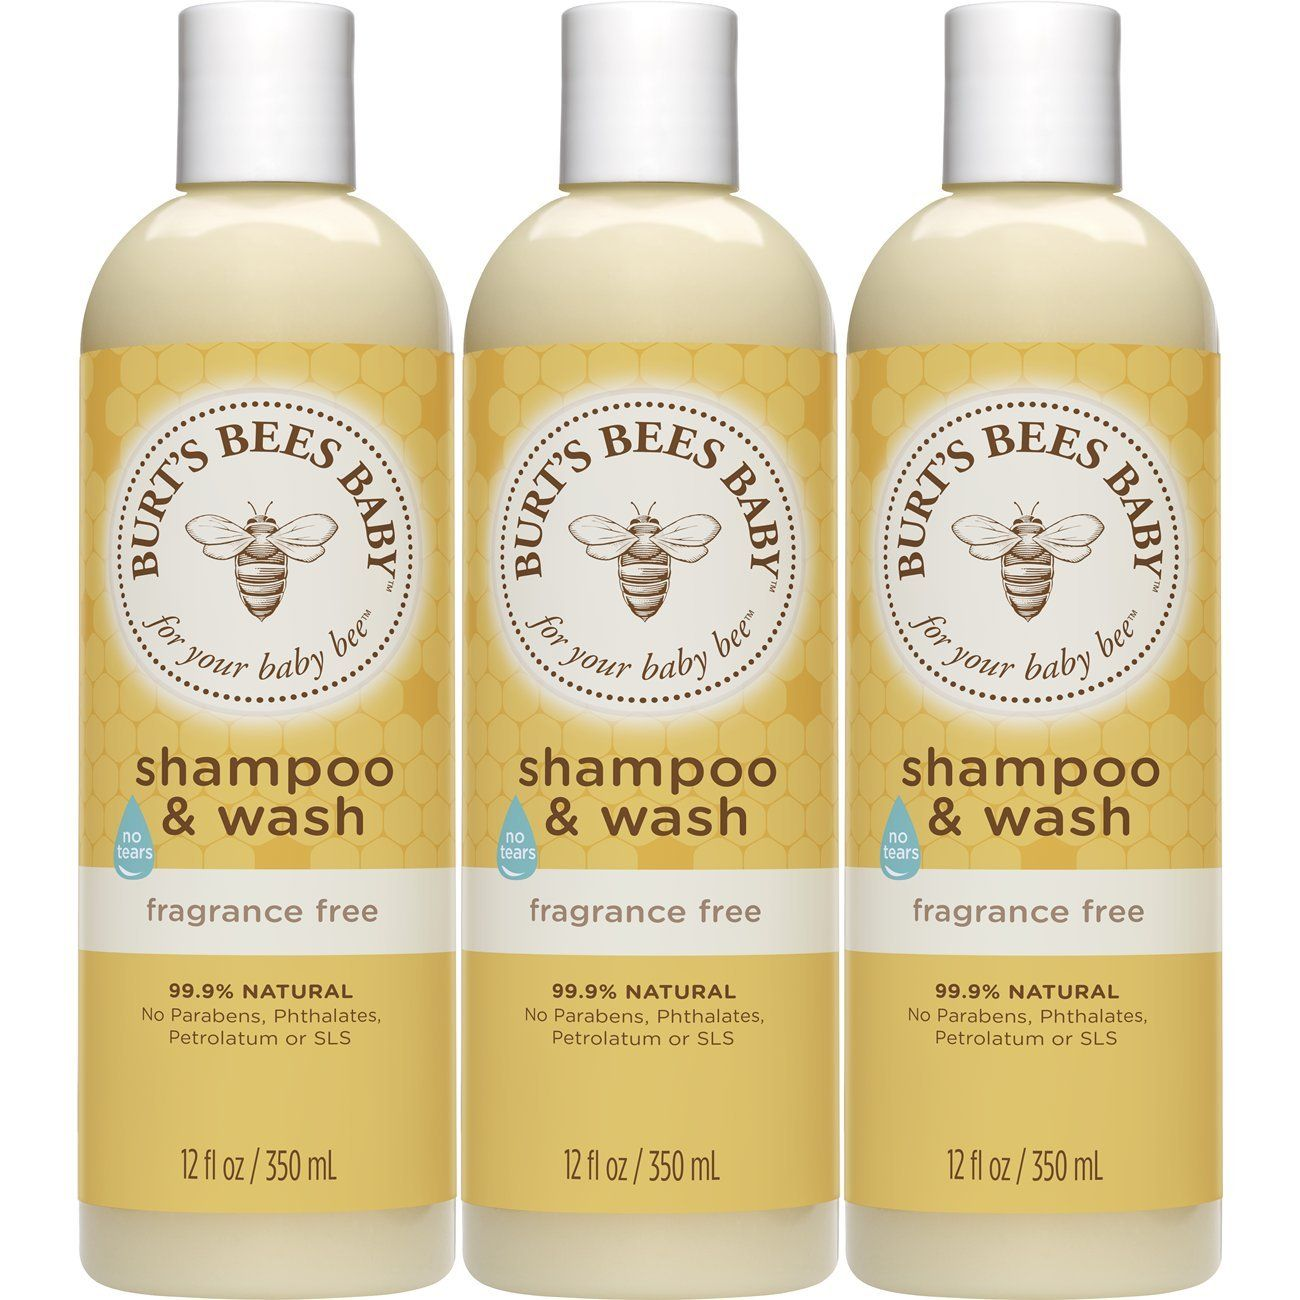 Burts bees baby shampoo and wash fragrance free 12 ounces